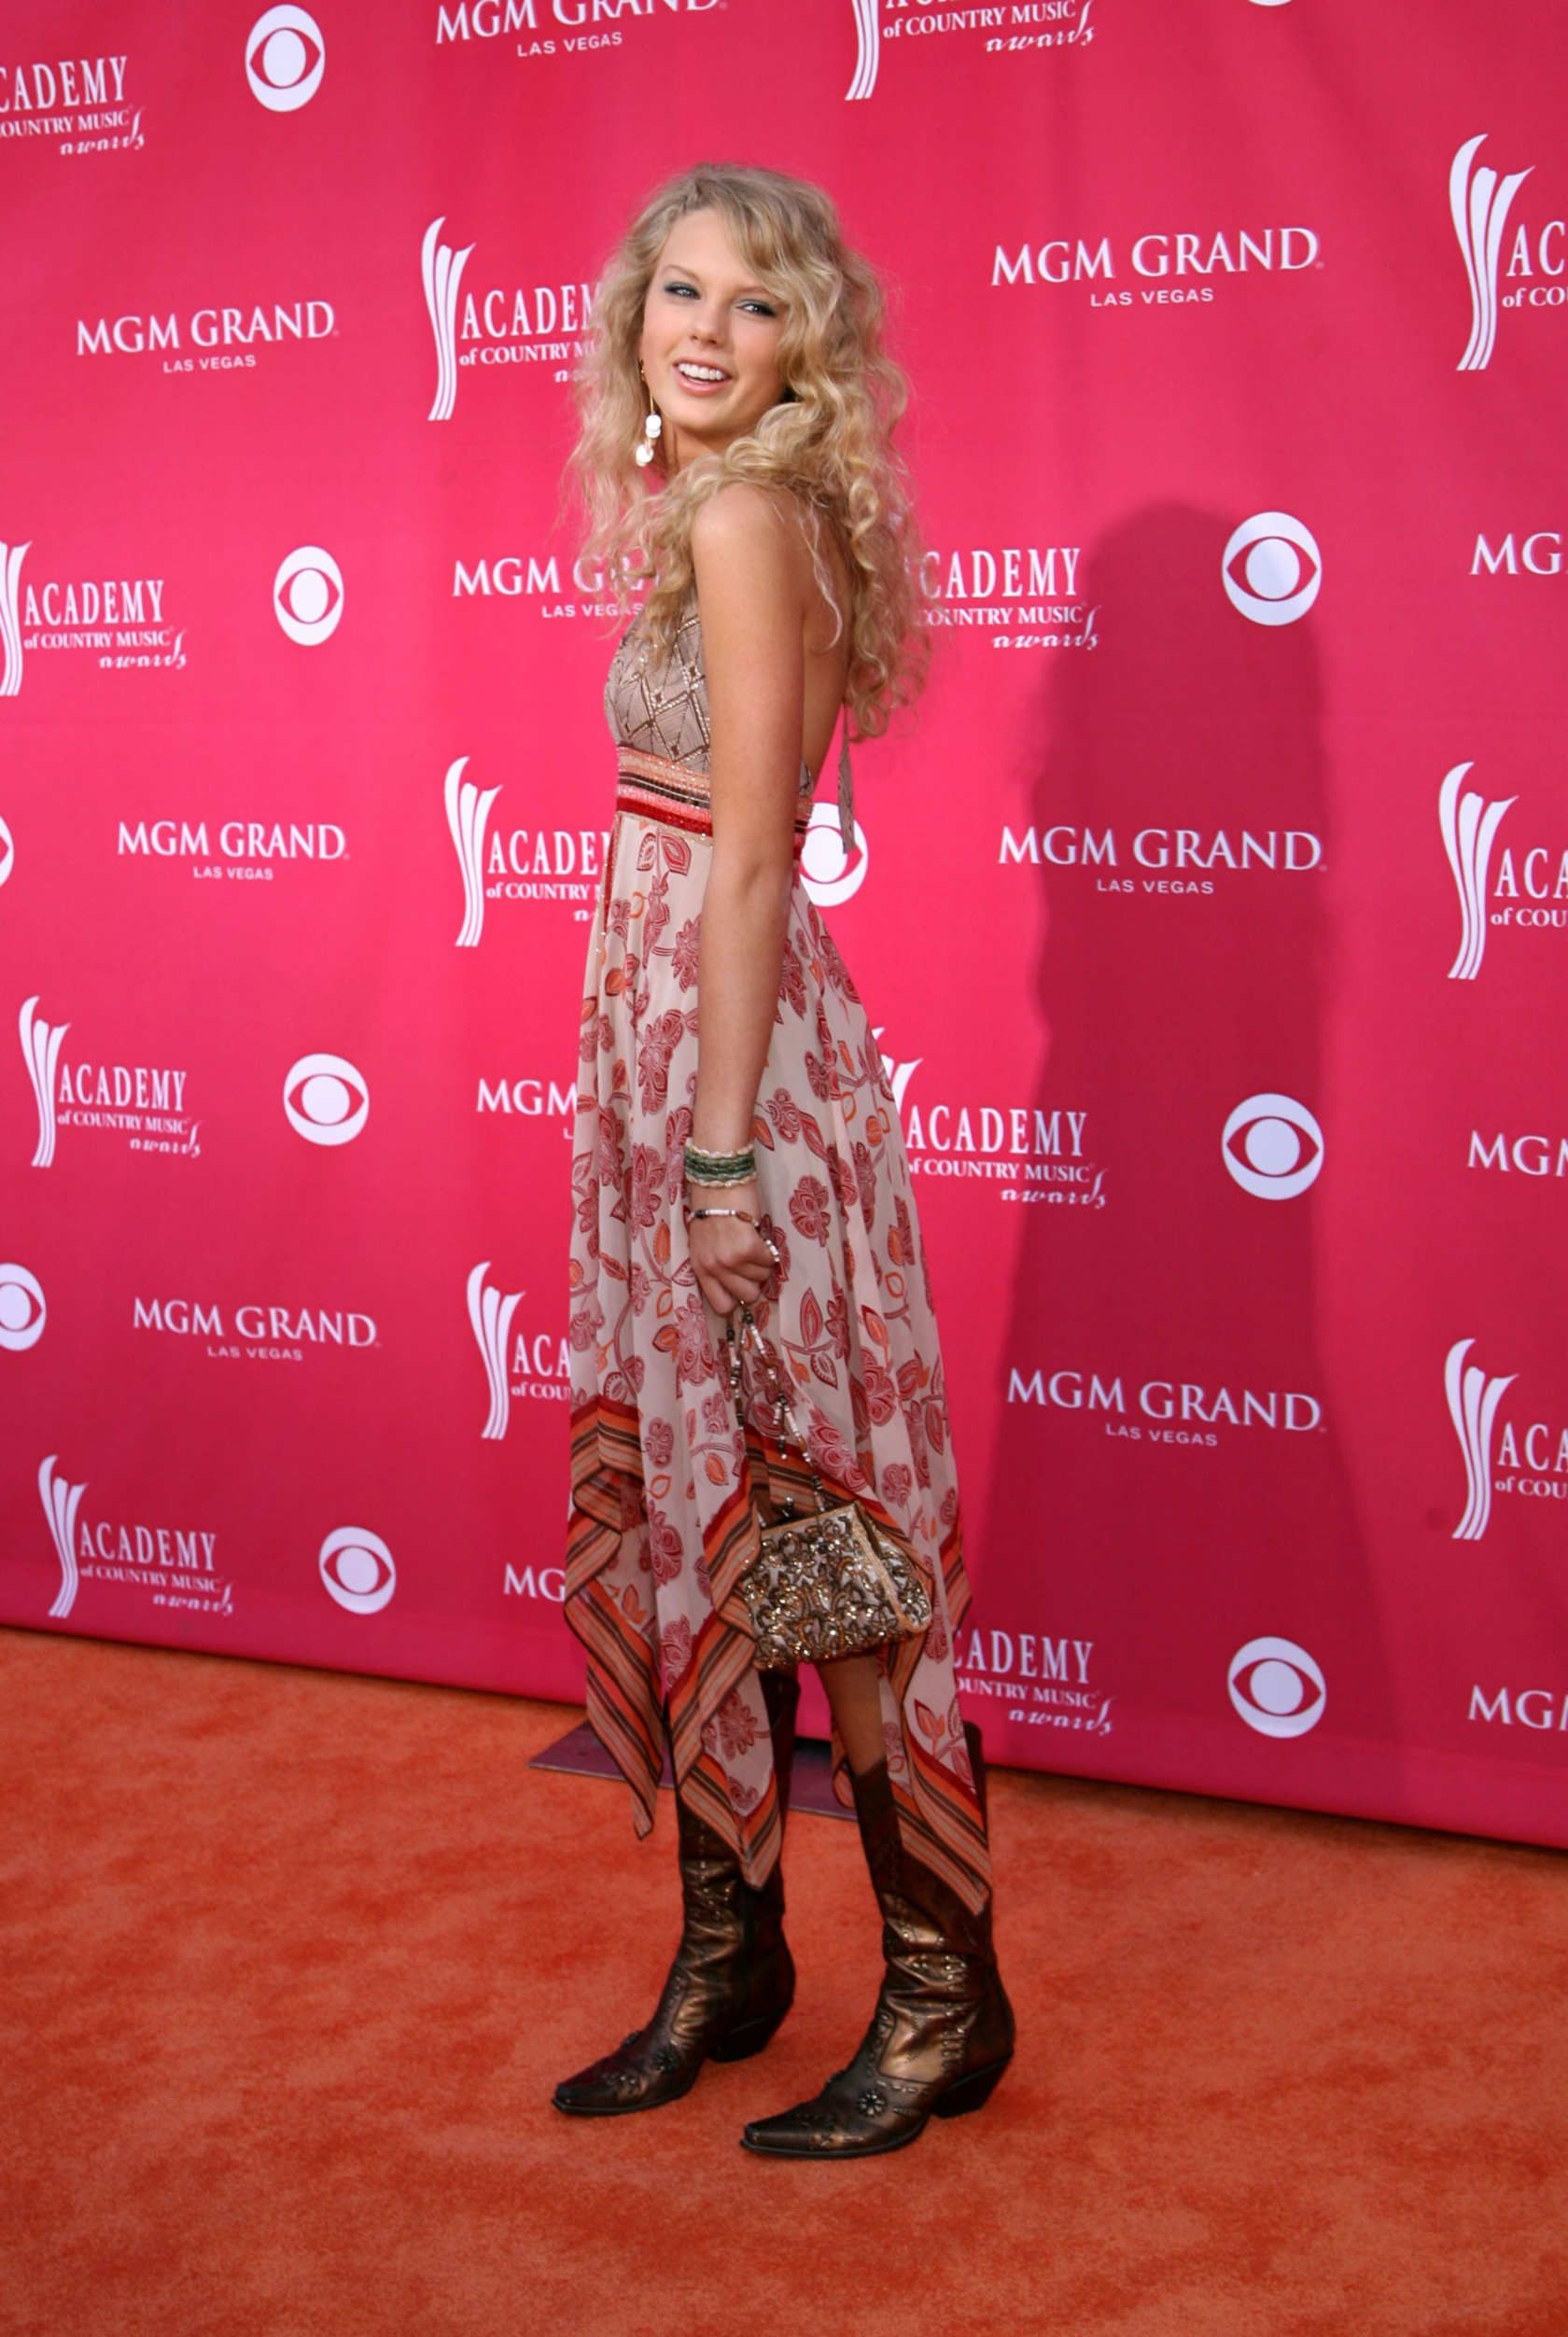 Taylor Swift - 41st Annual Academy Of Country Music Awards 2006 - MGM Grand Garden Arena - Las Vegas, Nevada - May 23, 2006.